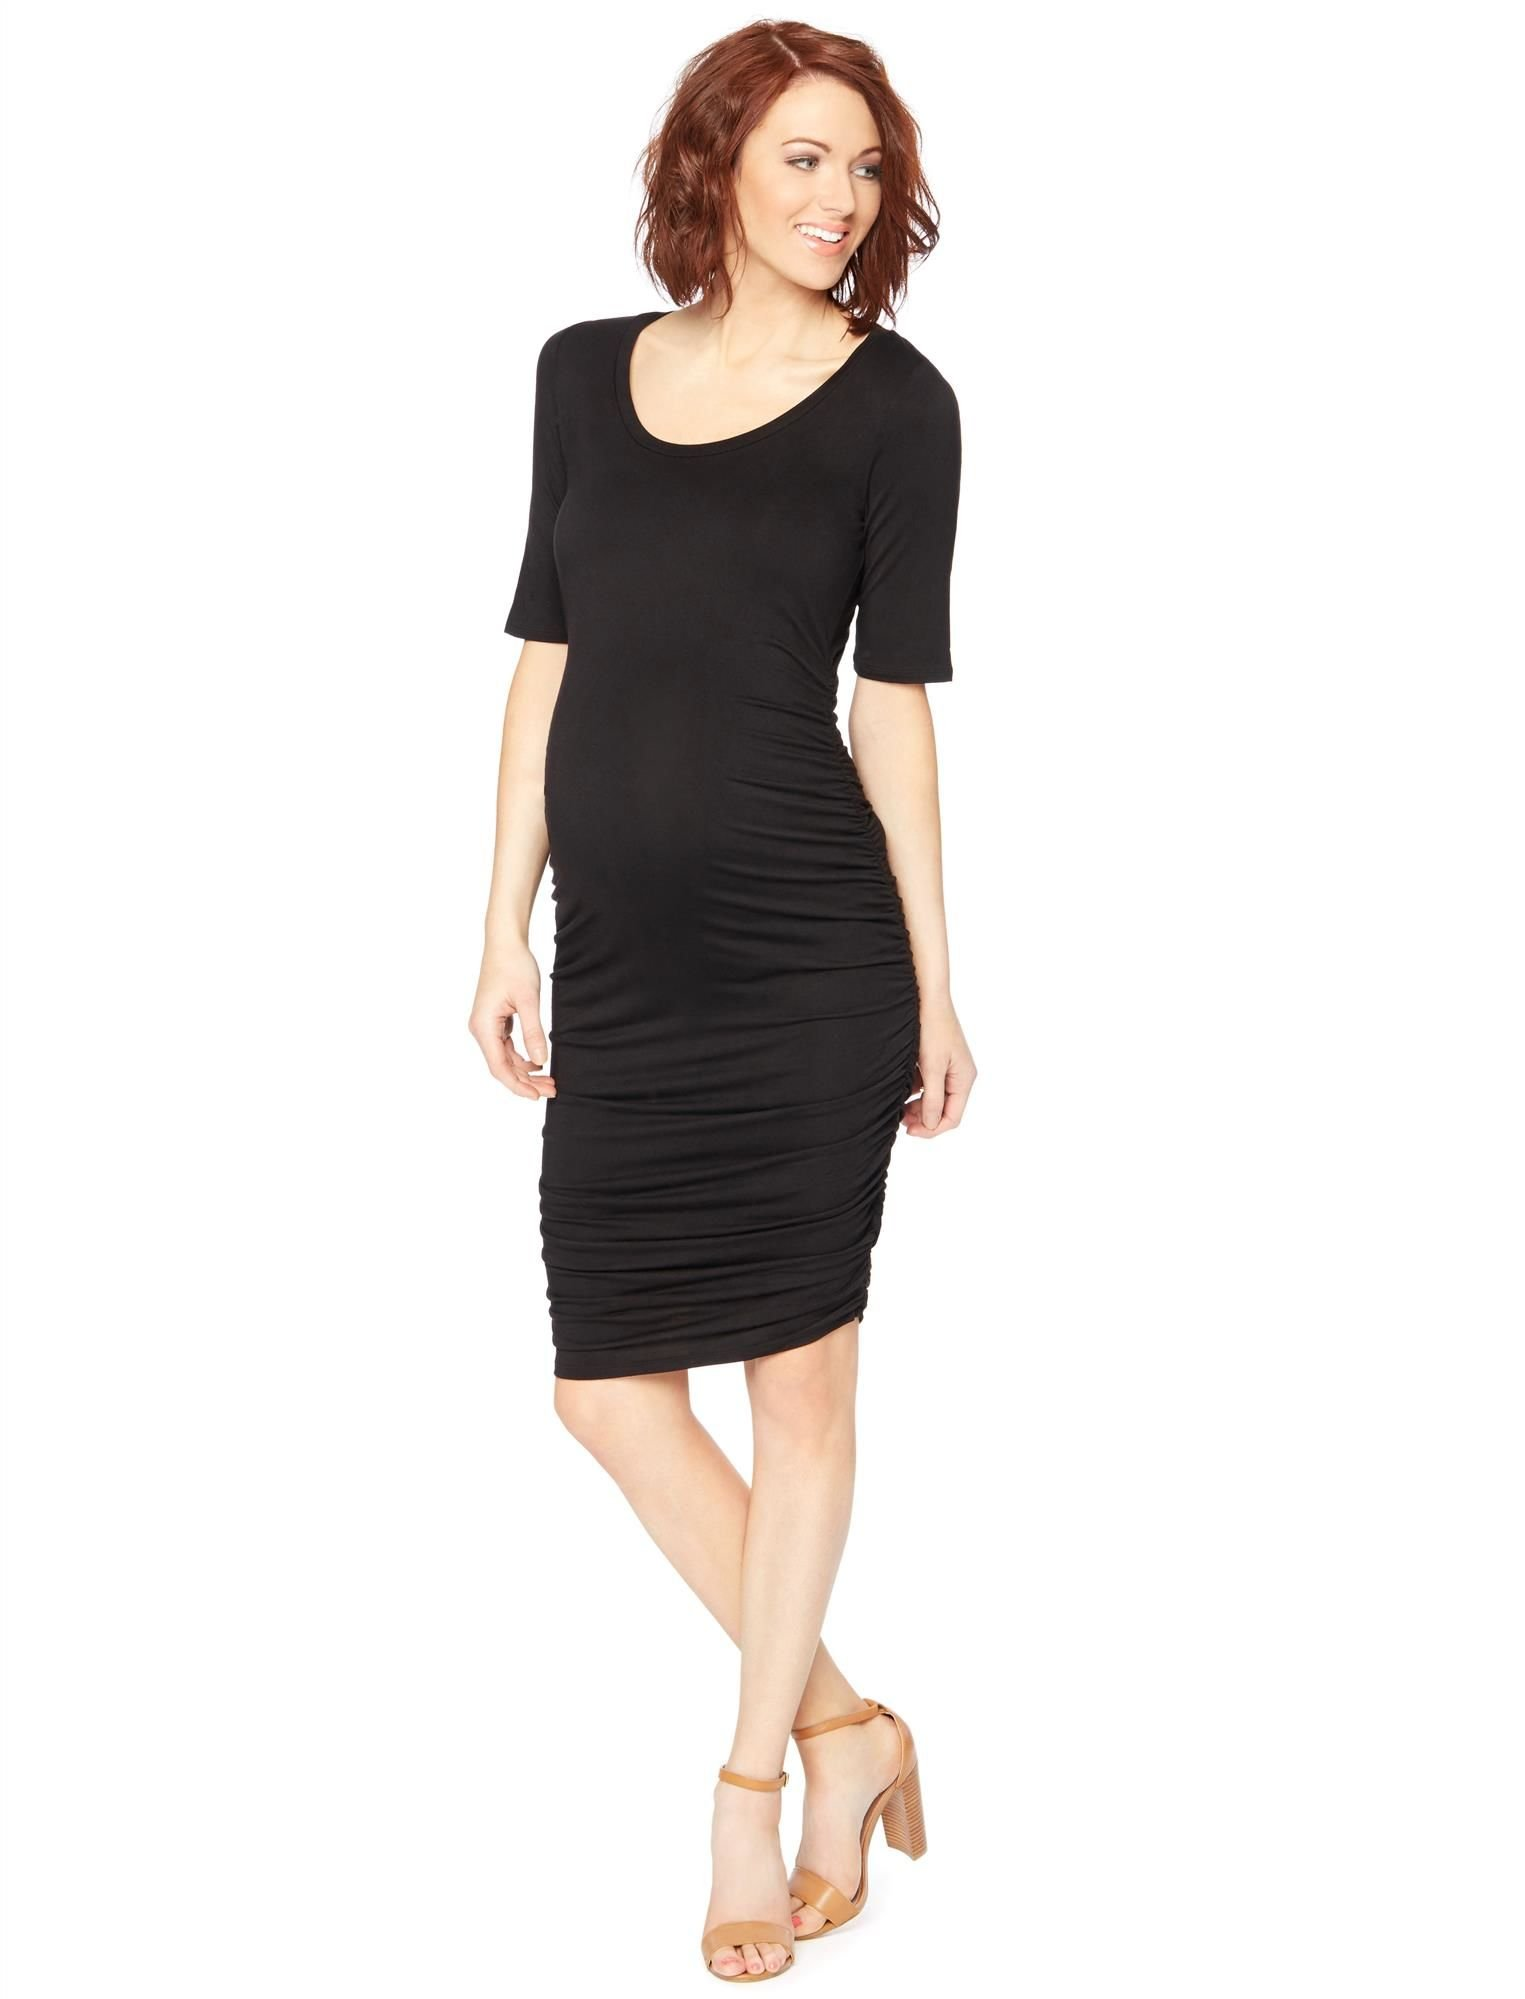 Motherhood Maternity Women's Maternity Elbow Sleeve Side Ruched Tee Shirt Dress, Black, Large